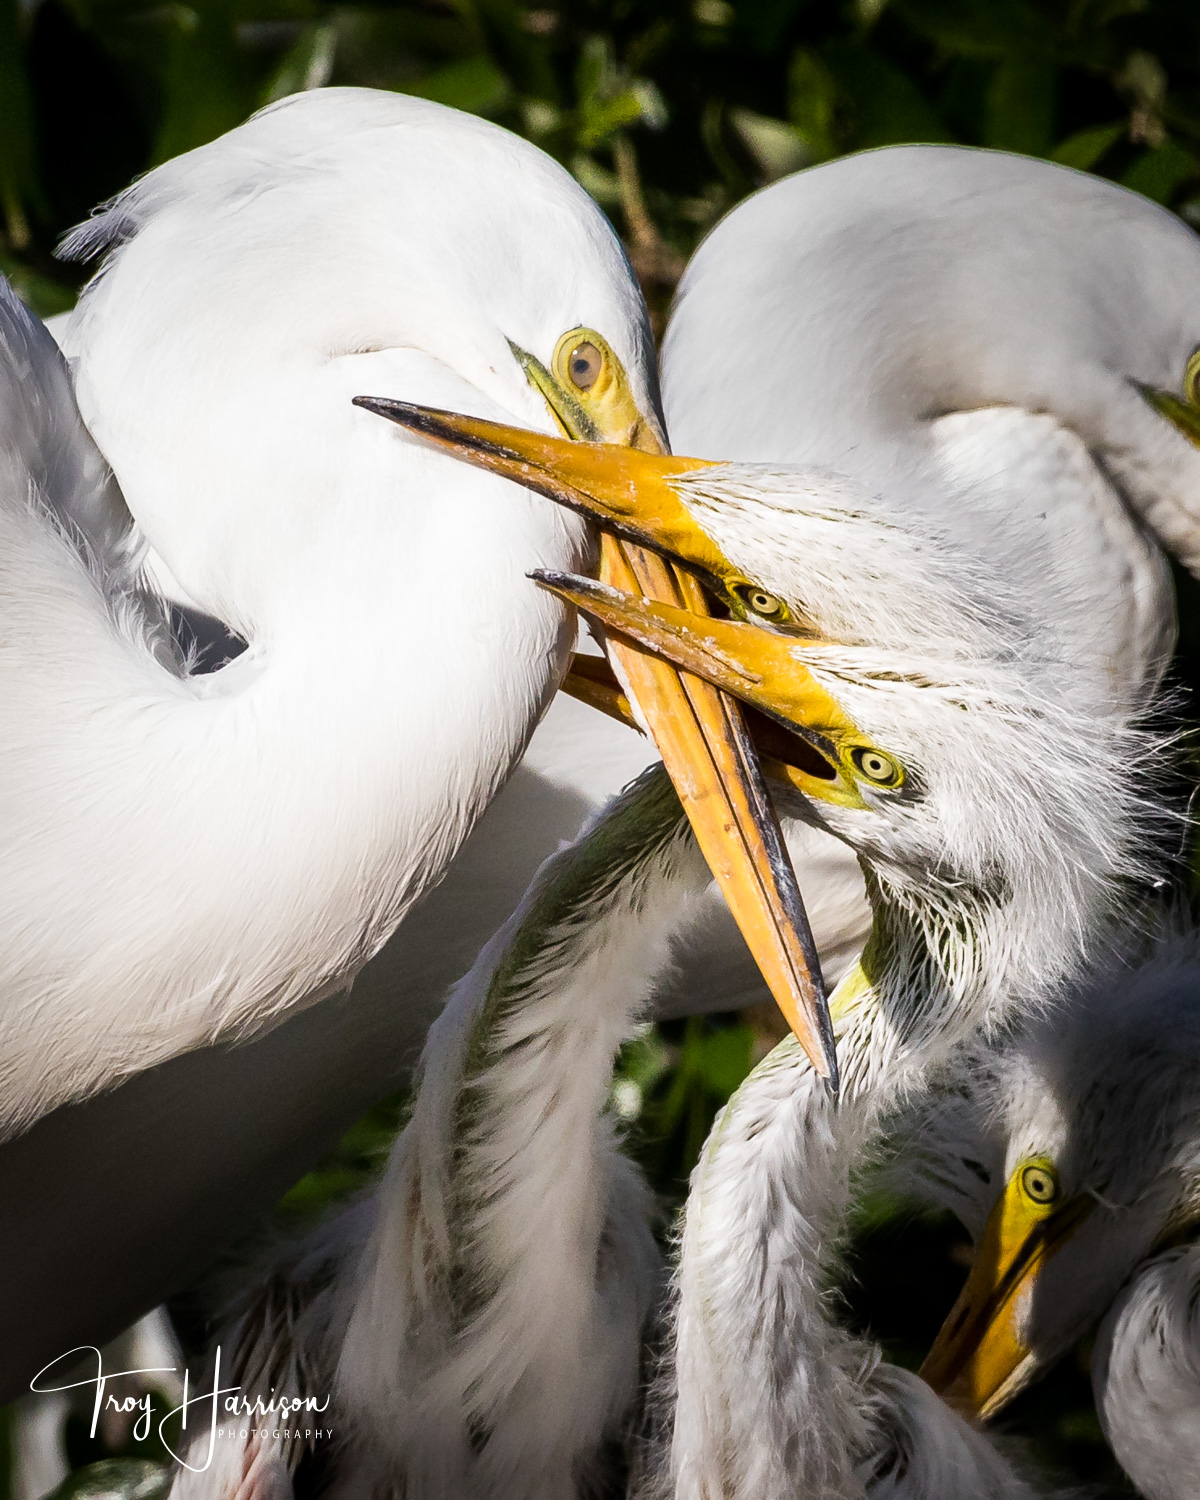 1 - Great Egrets, Everglades, April 2019, img 1093.jpg